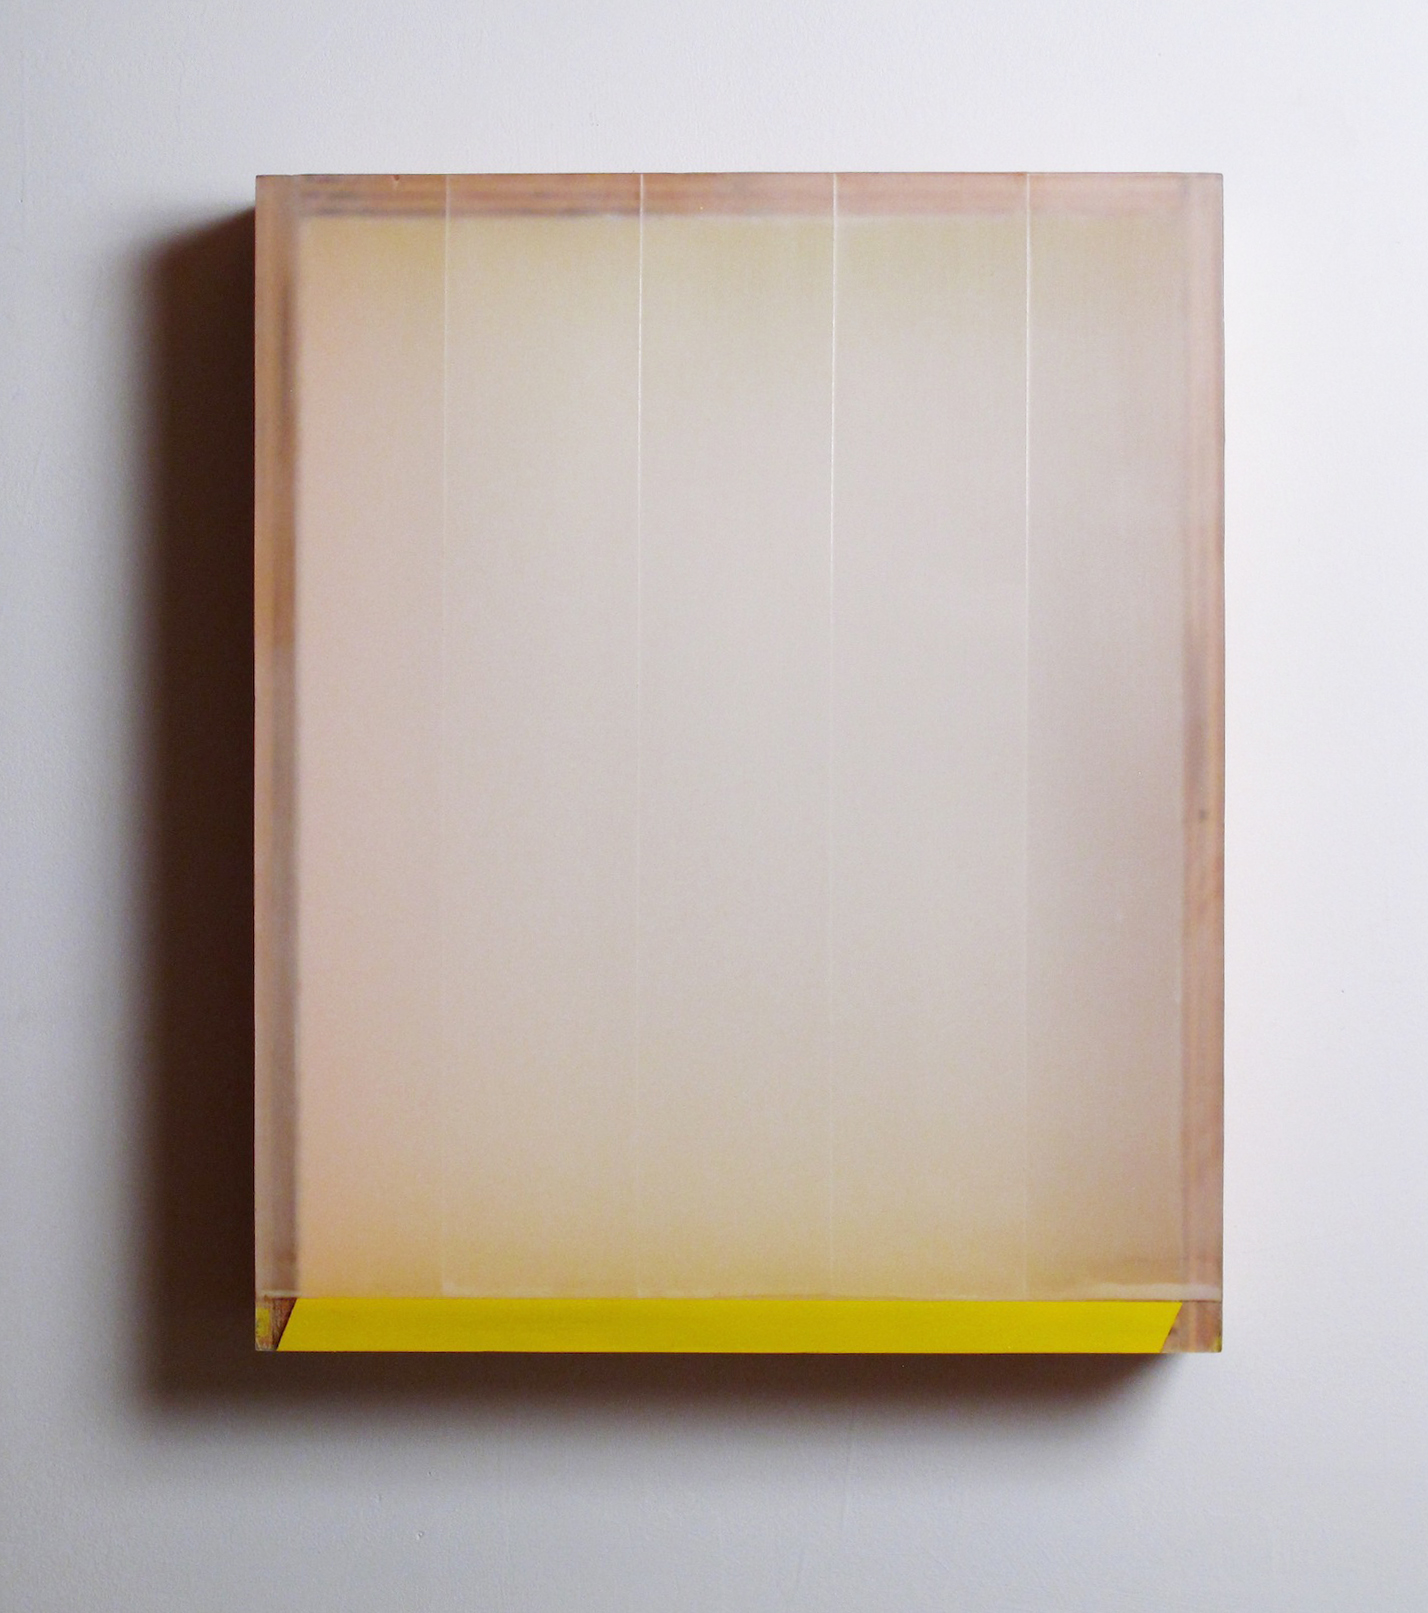 Light Leak  plexiglas, birch, pigment, tape, beeswax, enamel 19.5 x 15.75 x 3.75 inches; 49.5 x 40 x 9.5 centimeters